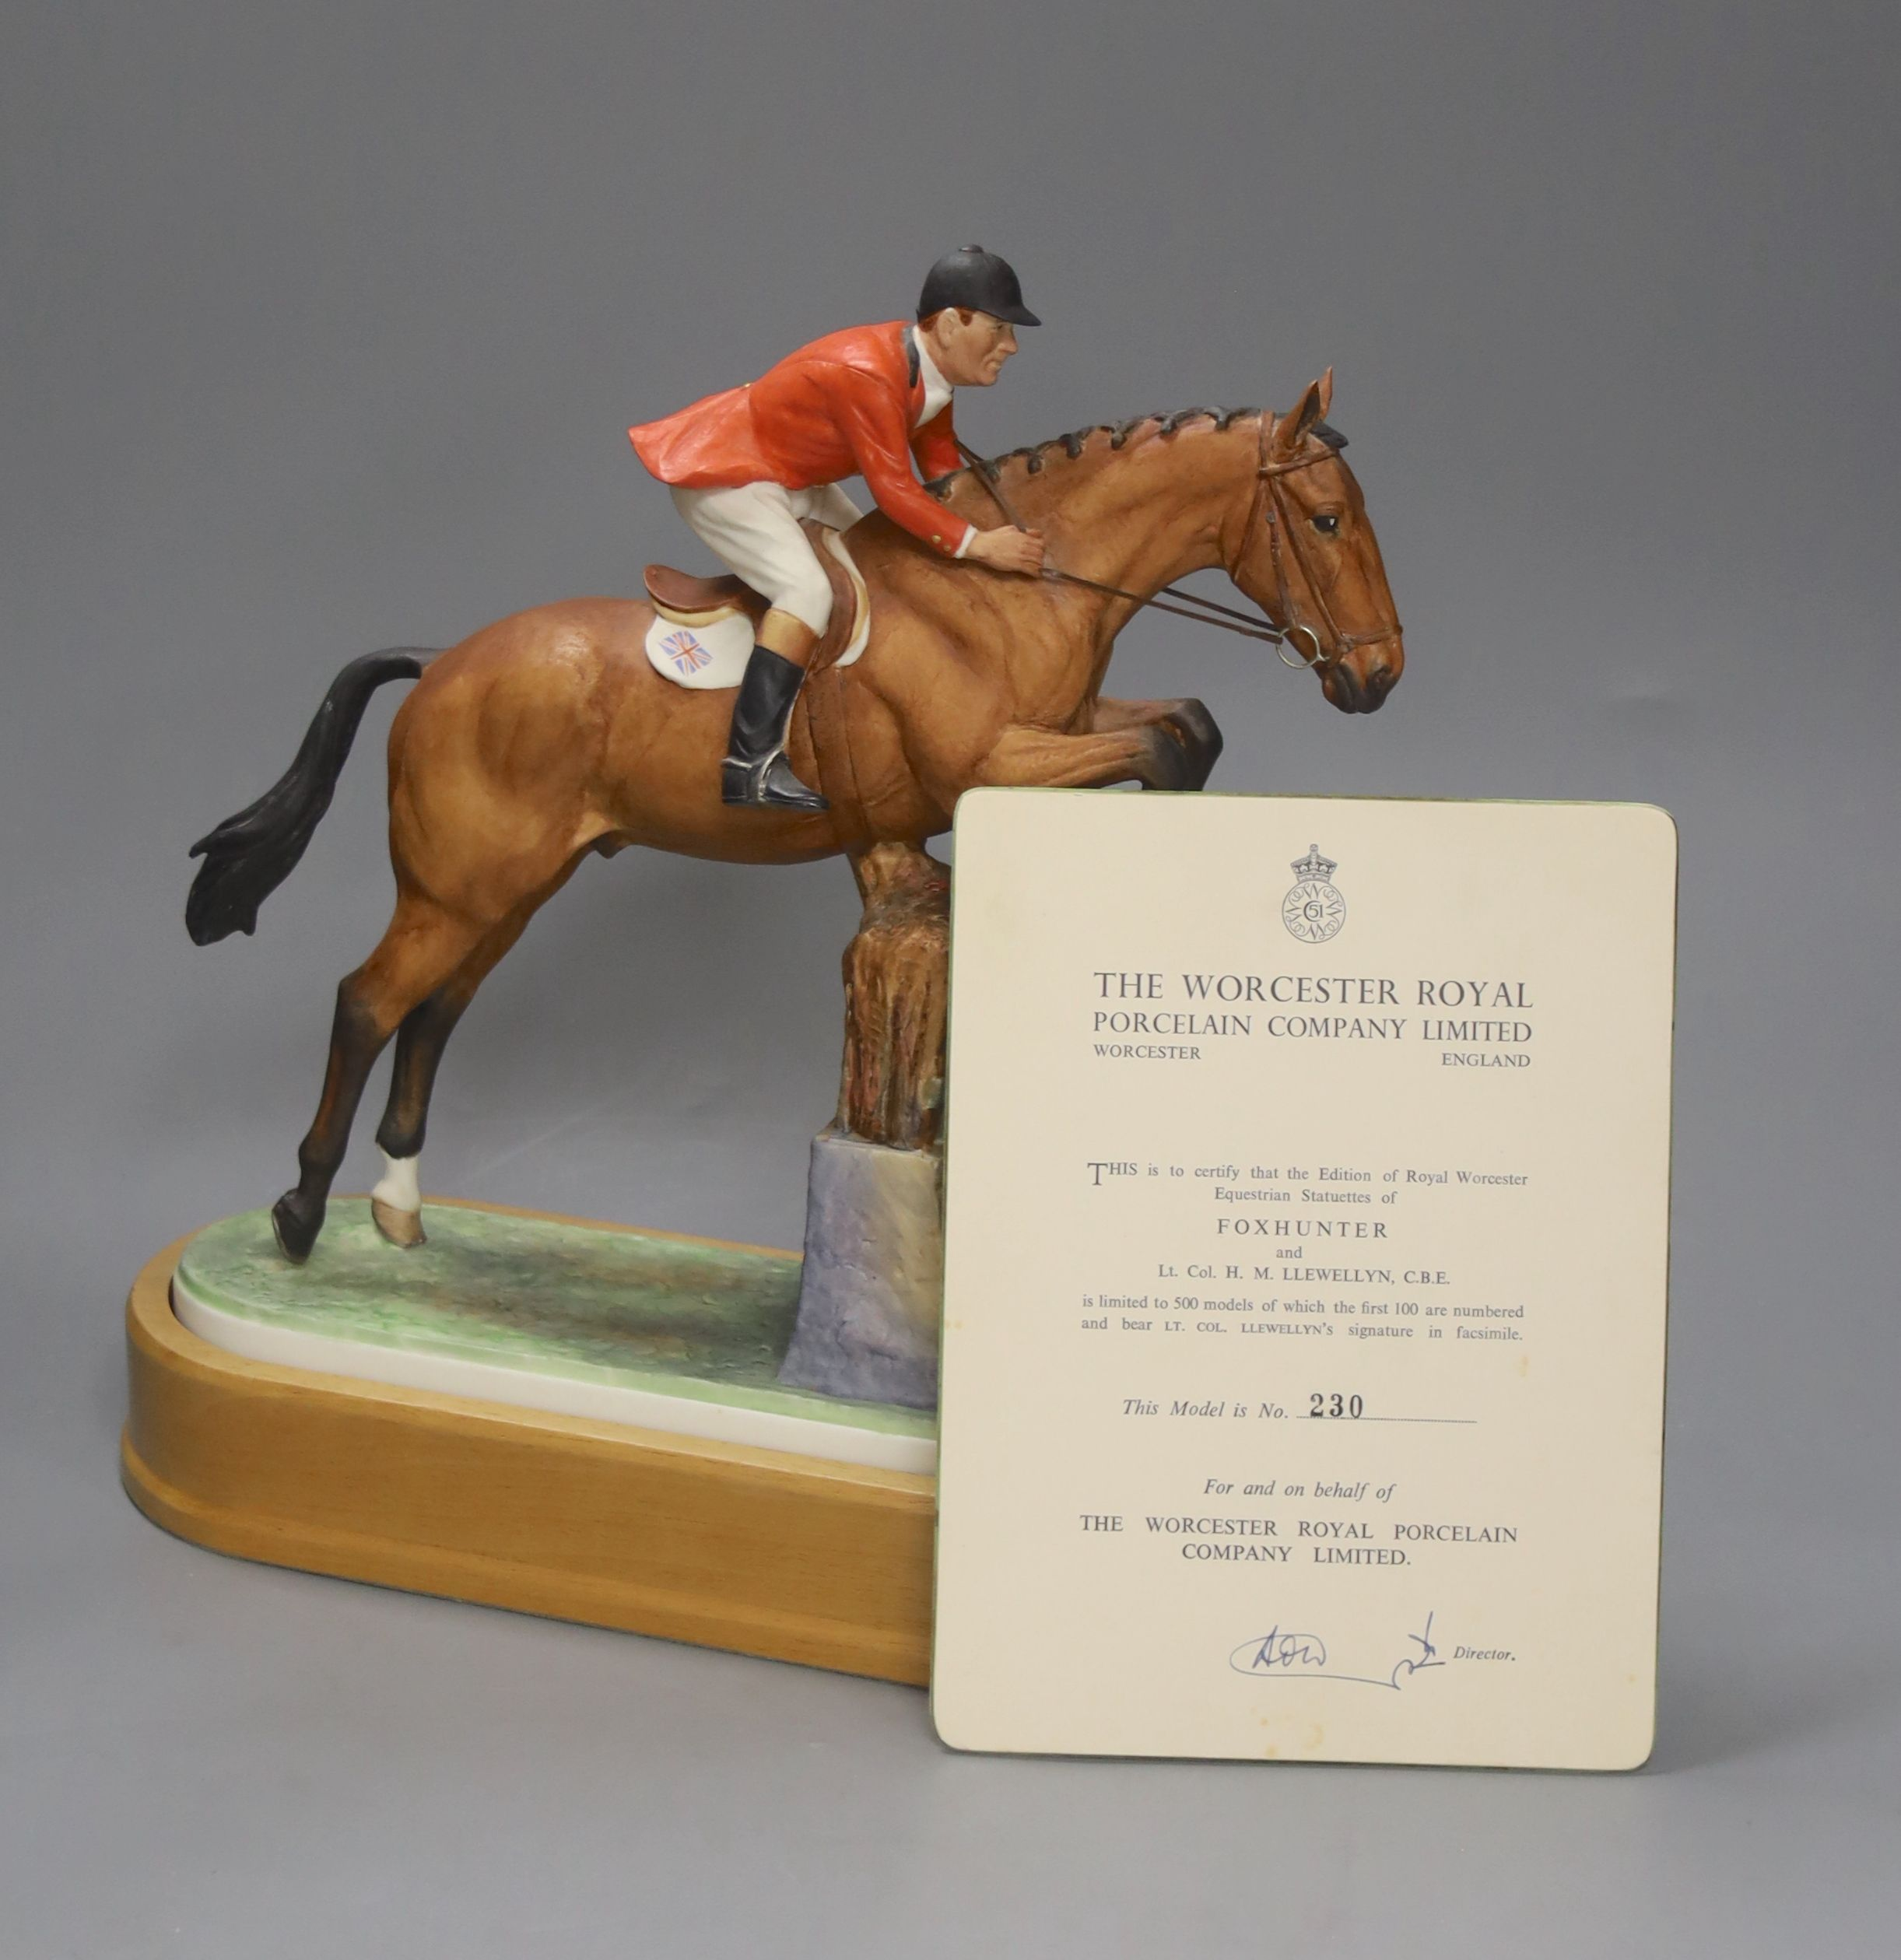 Doris Lindner for Royal Worcester, a limited edition figure, 'Foxhunter and Lt. Col. H M Llewellyn